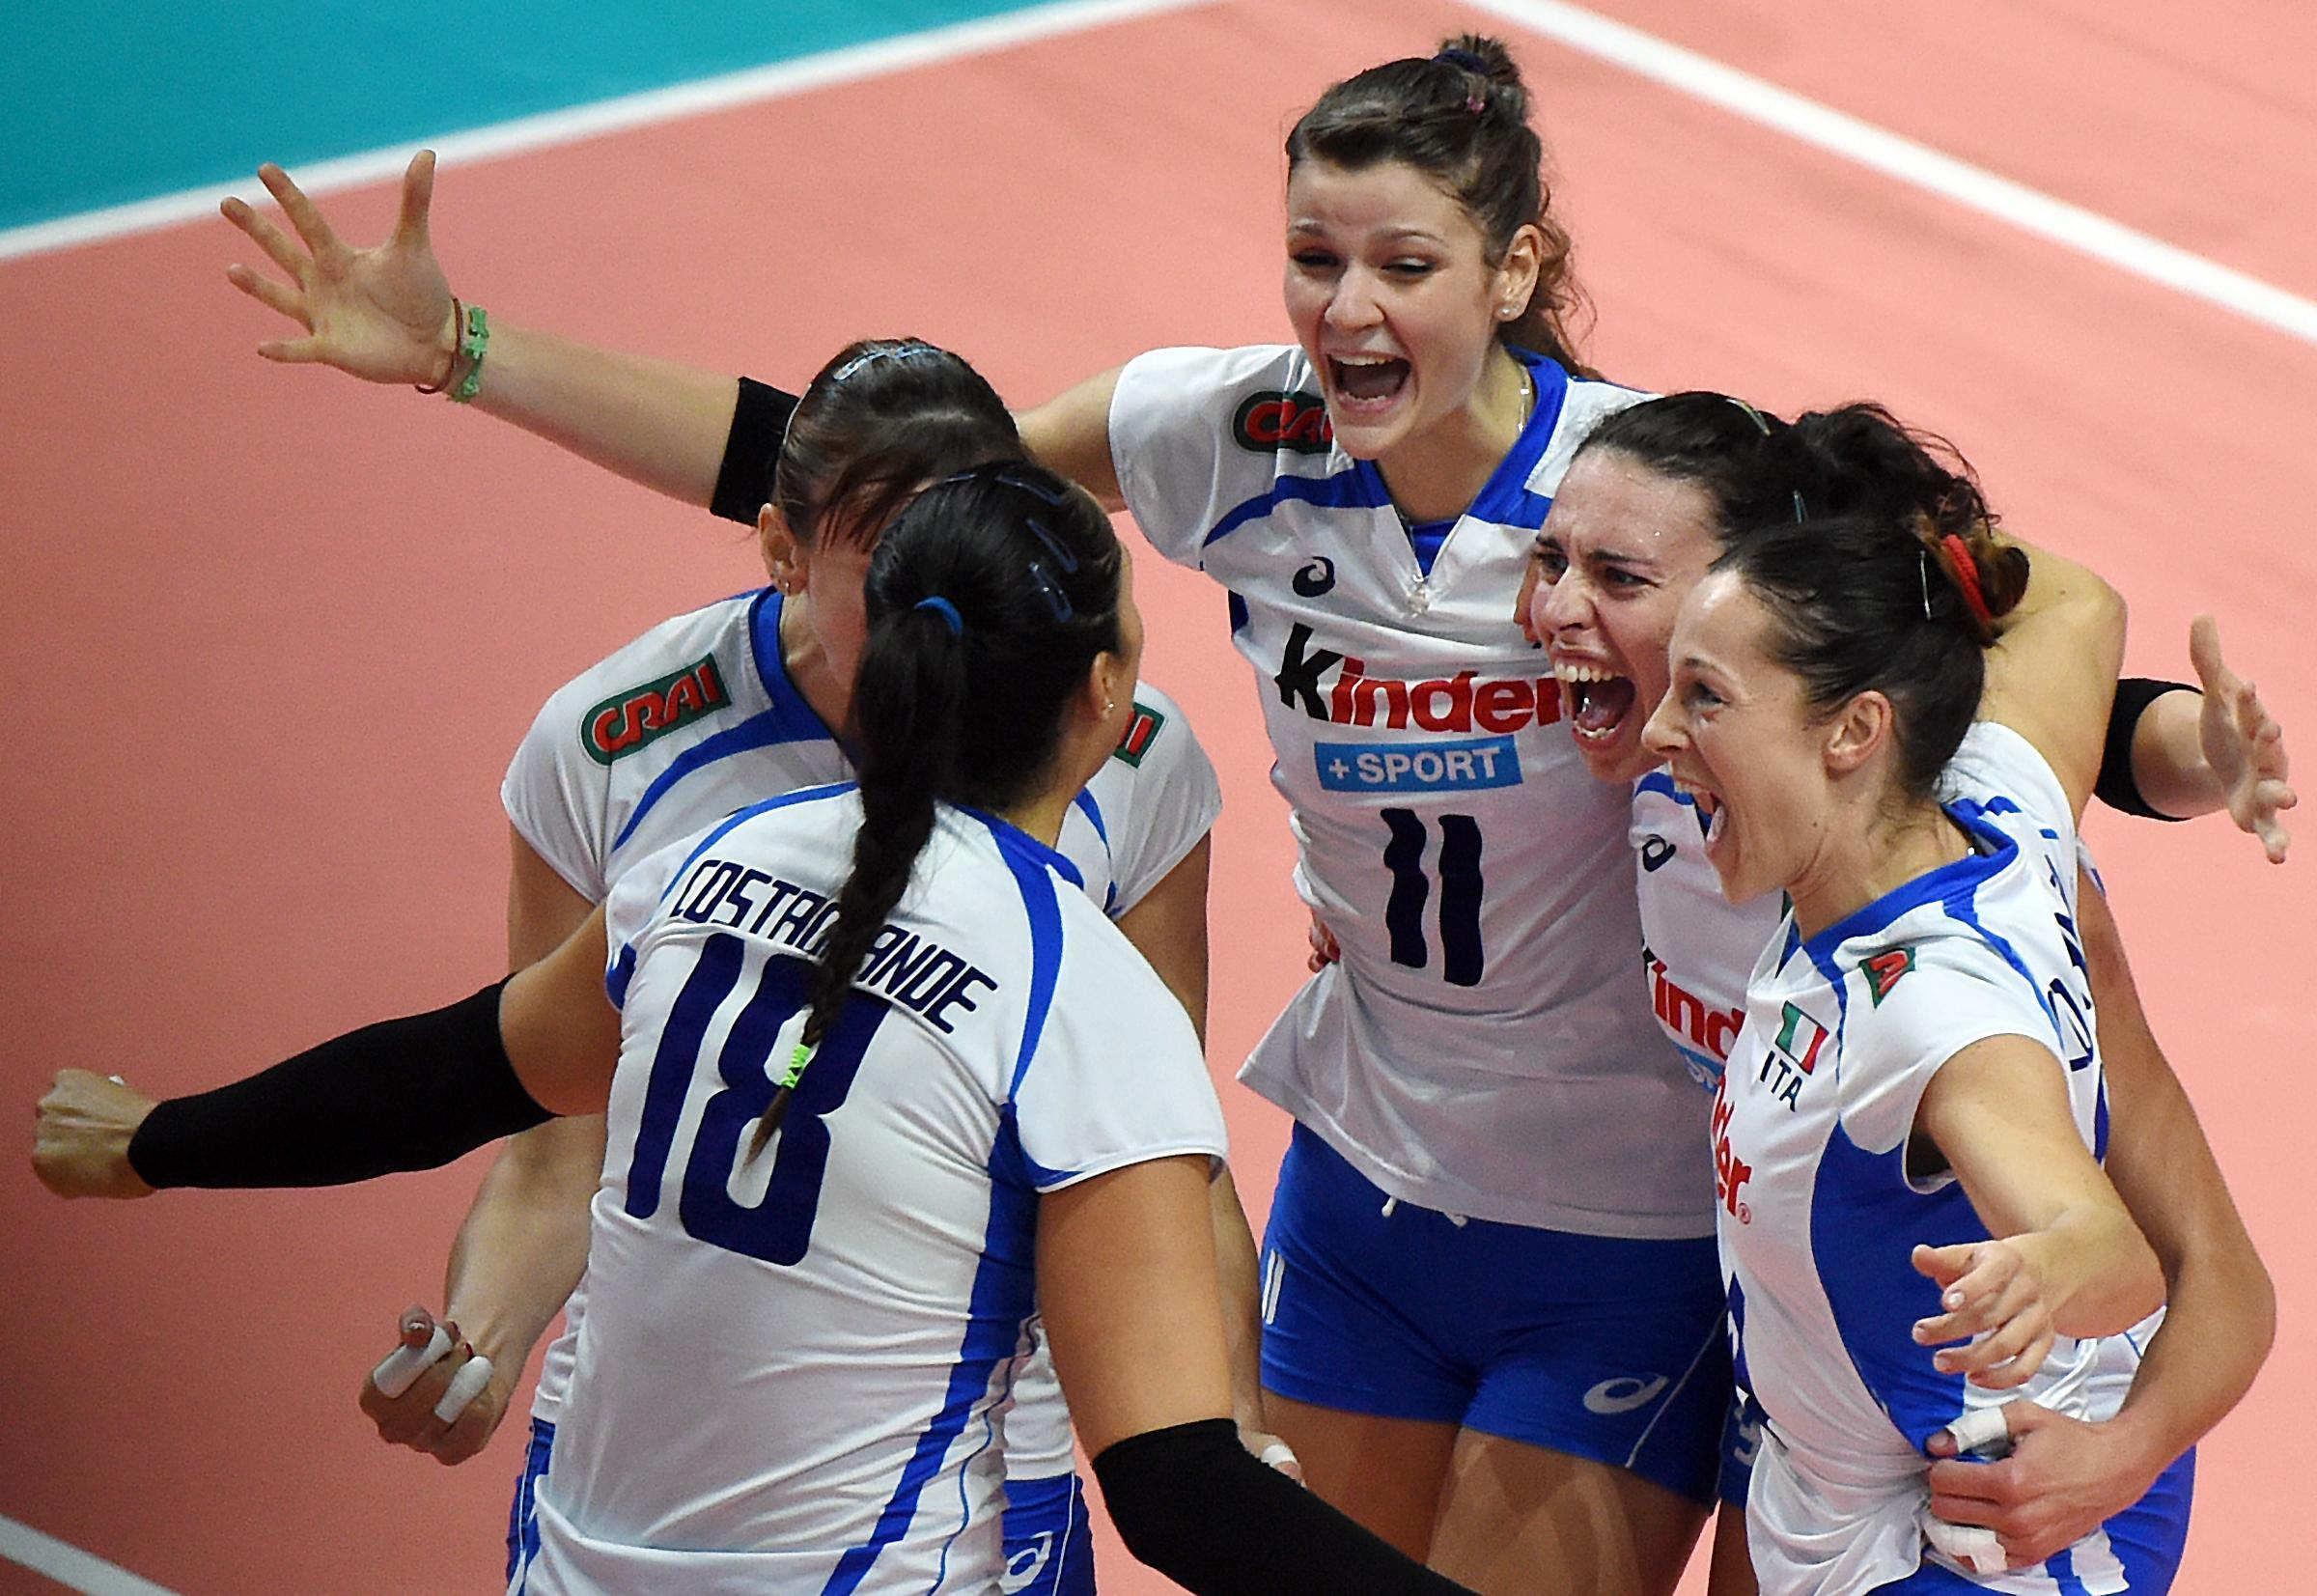 italia russia volley femminile oggi - photo #5